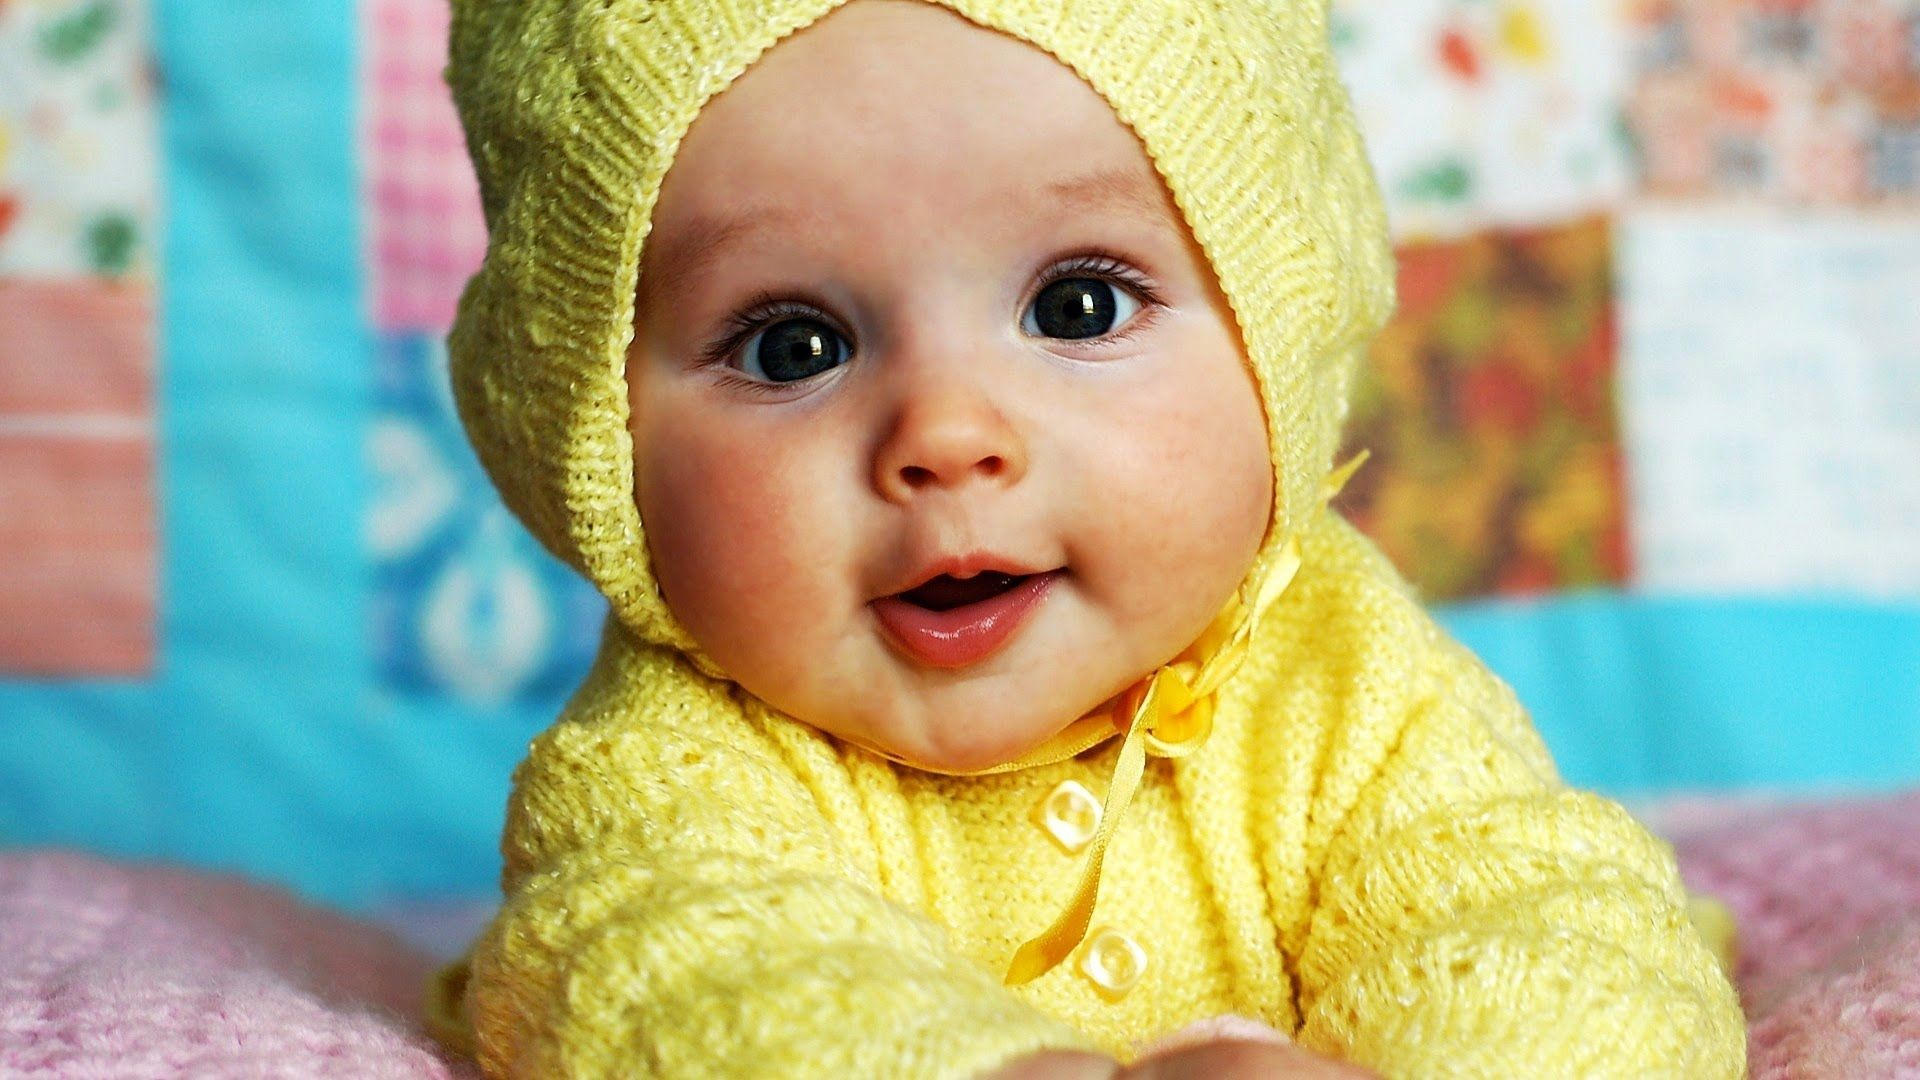 Cute Baby Boy Pictures Wallpapers 63 Images